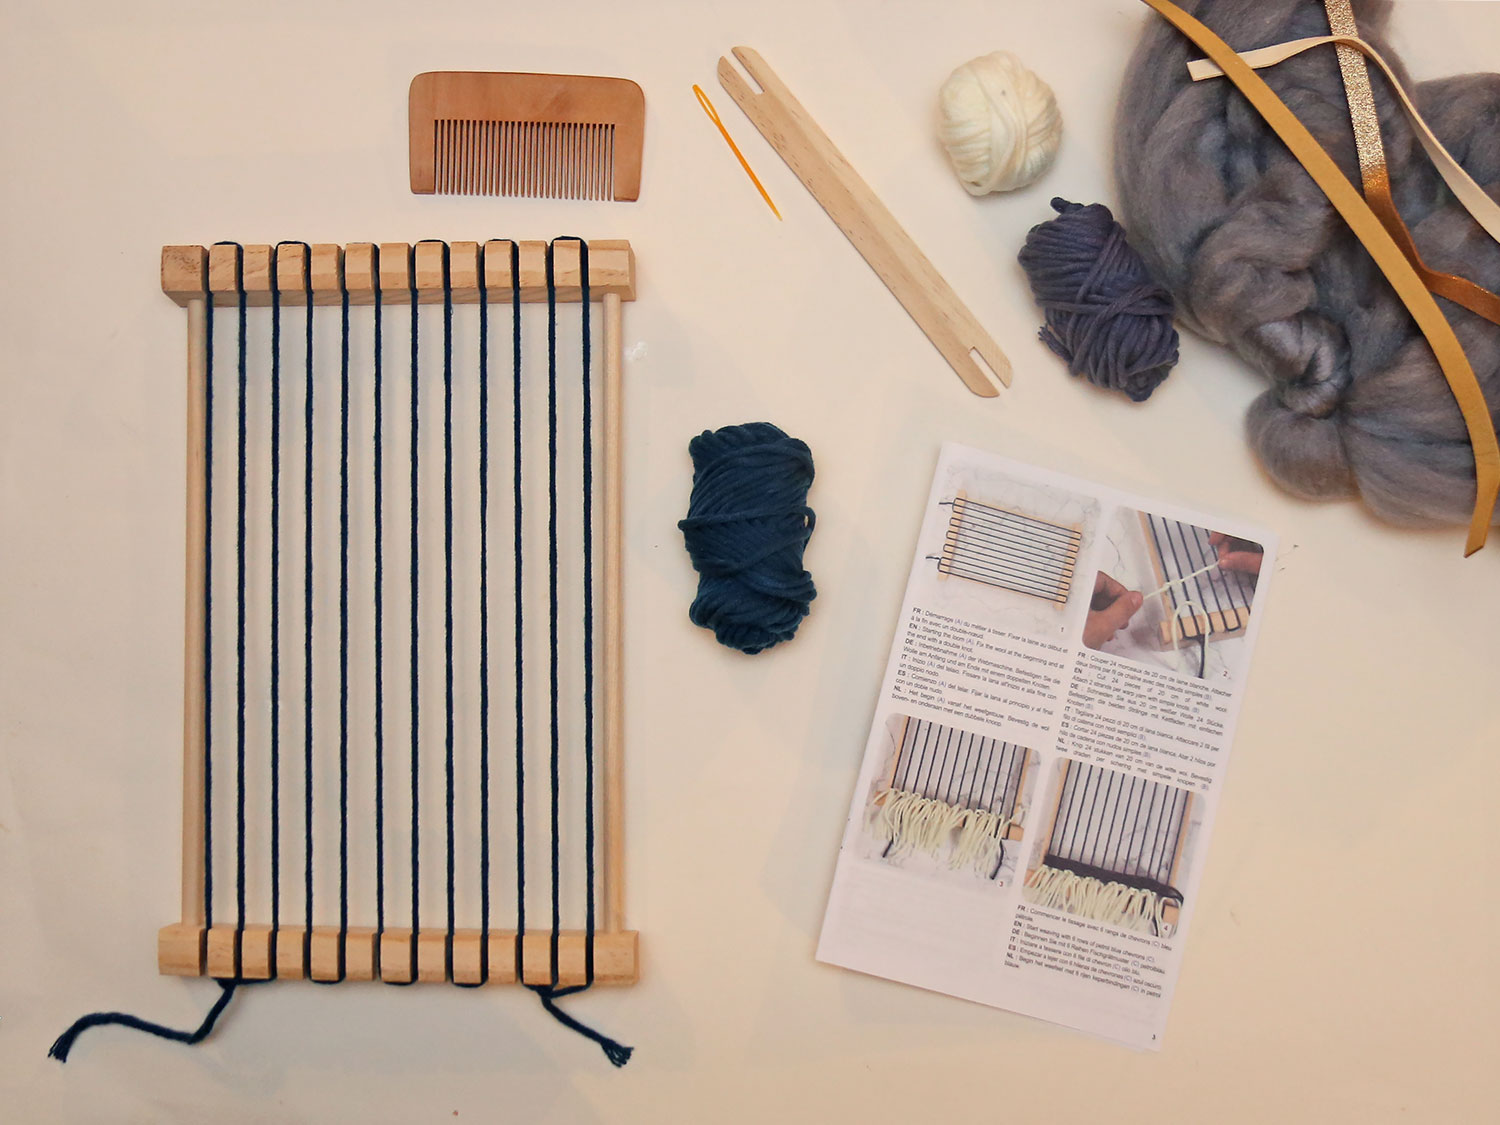 diy tissage graine creative metier a tisser